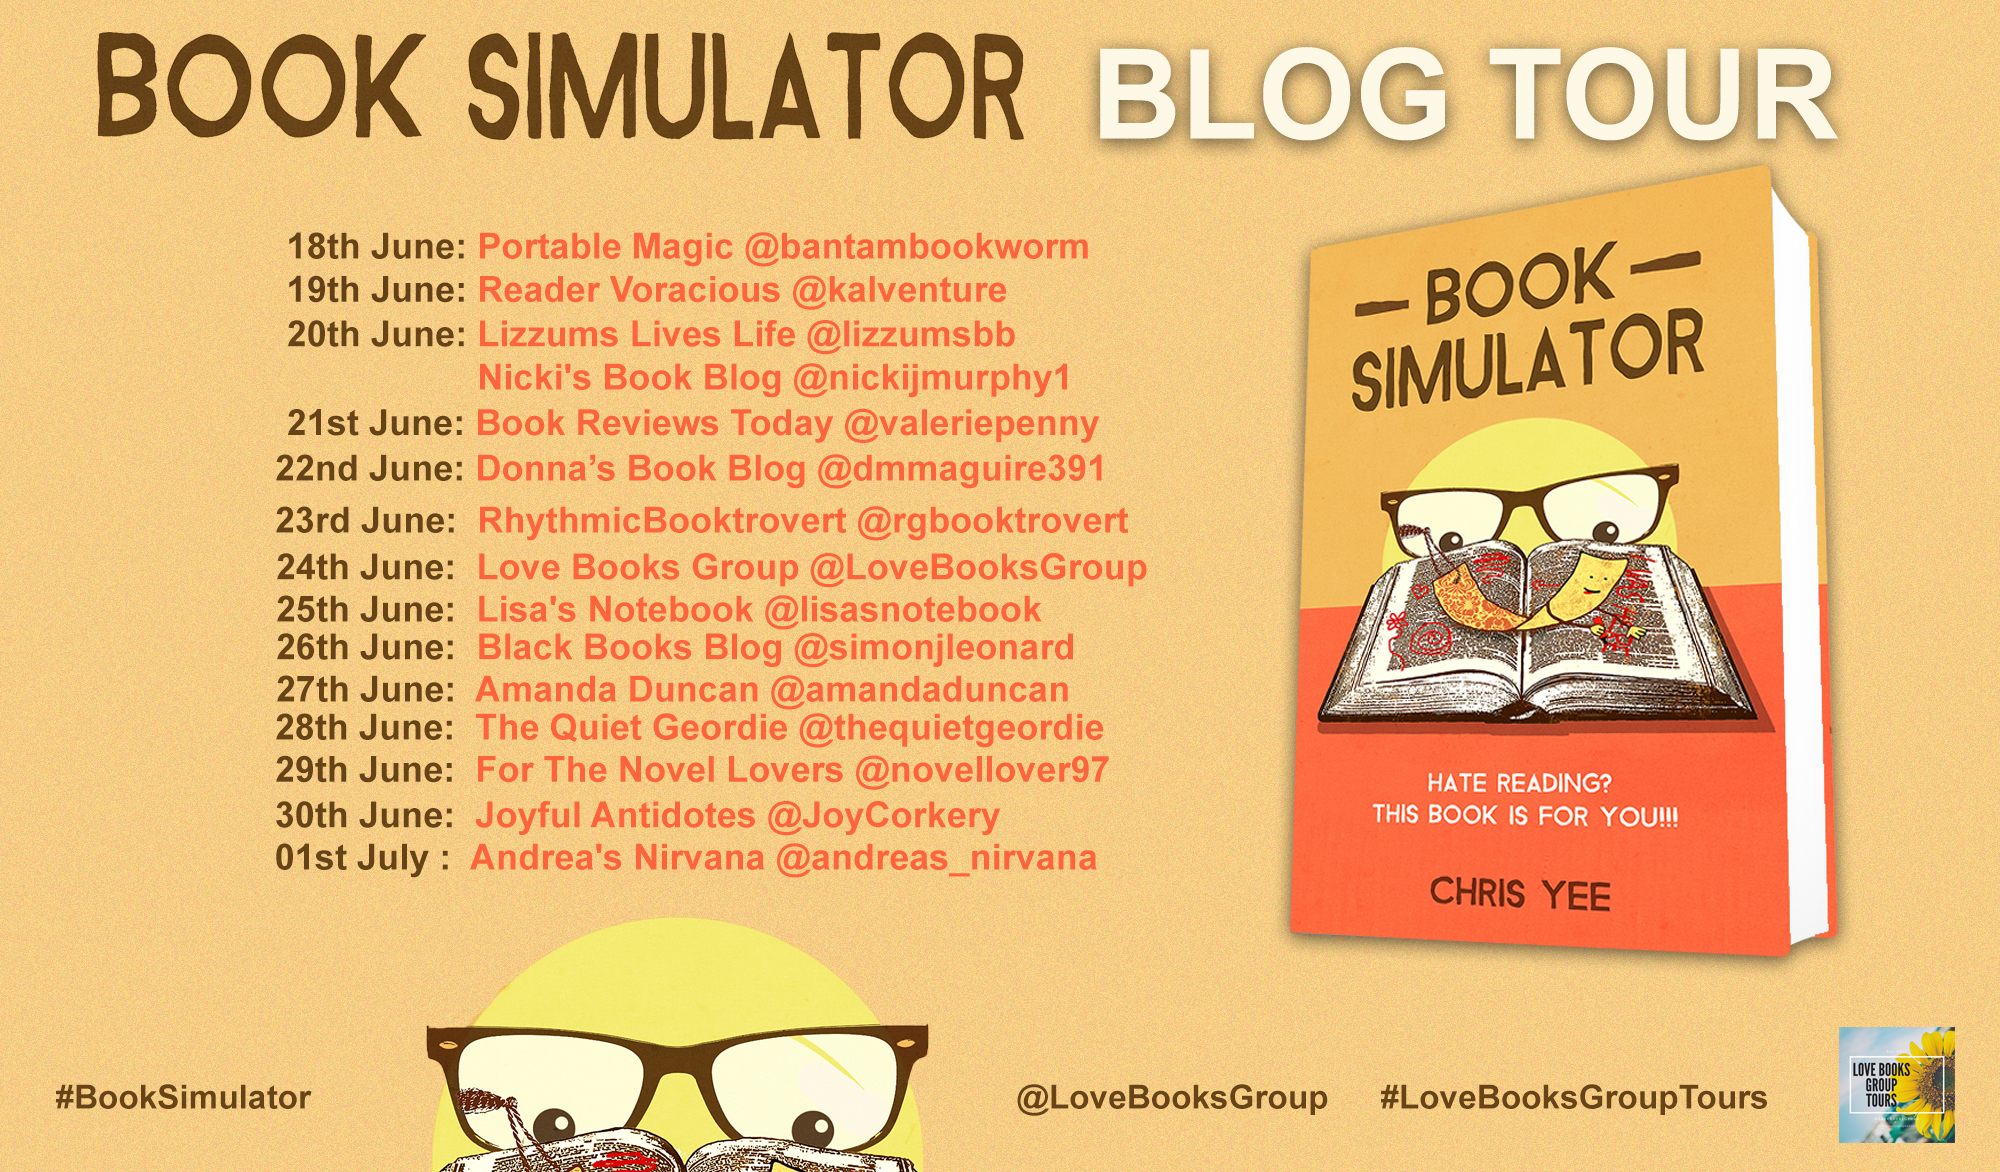 book simulator